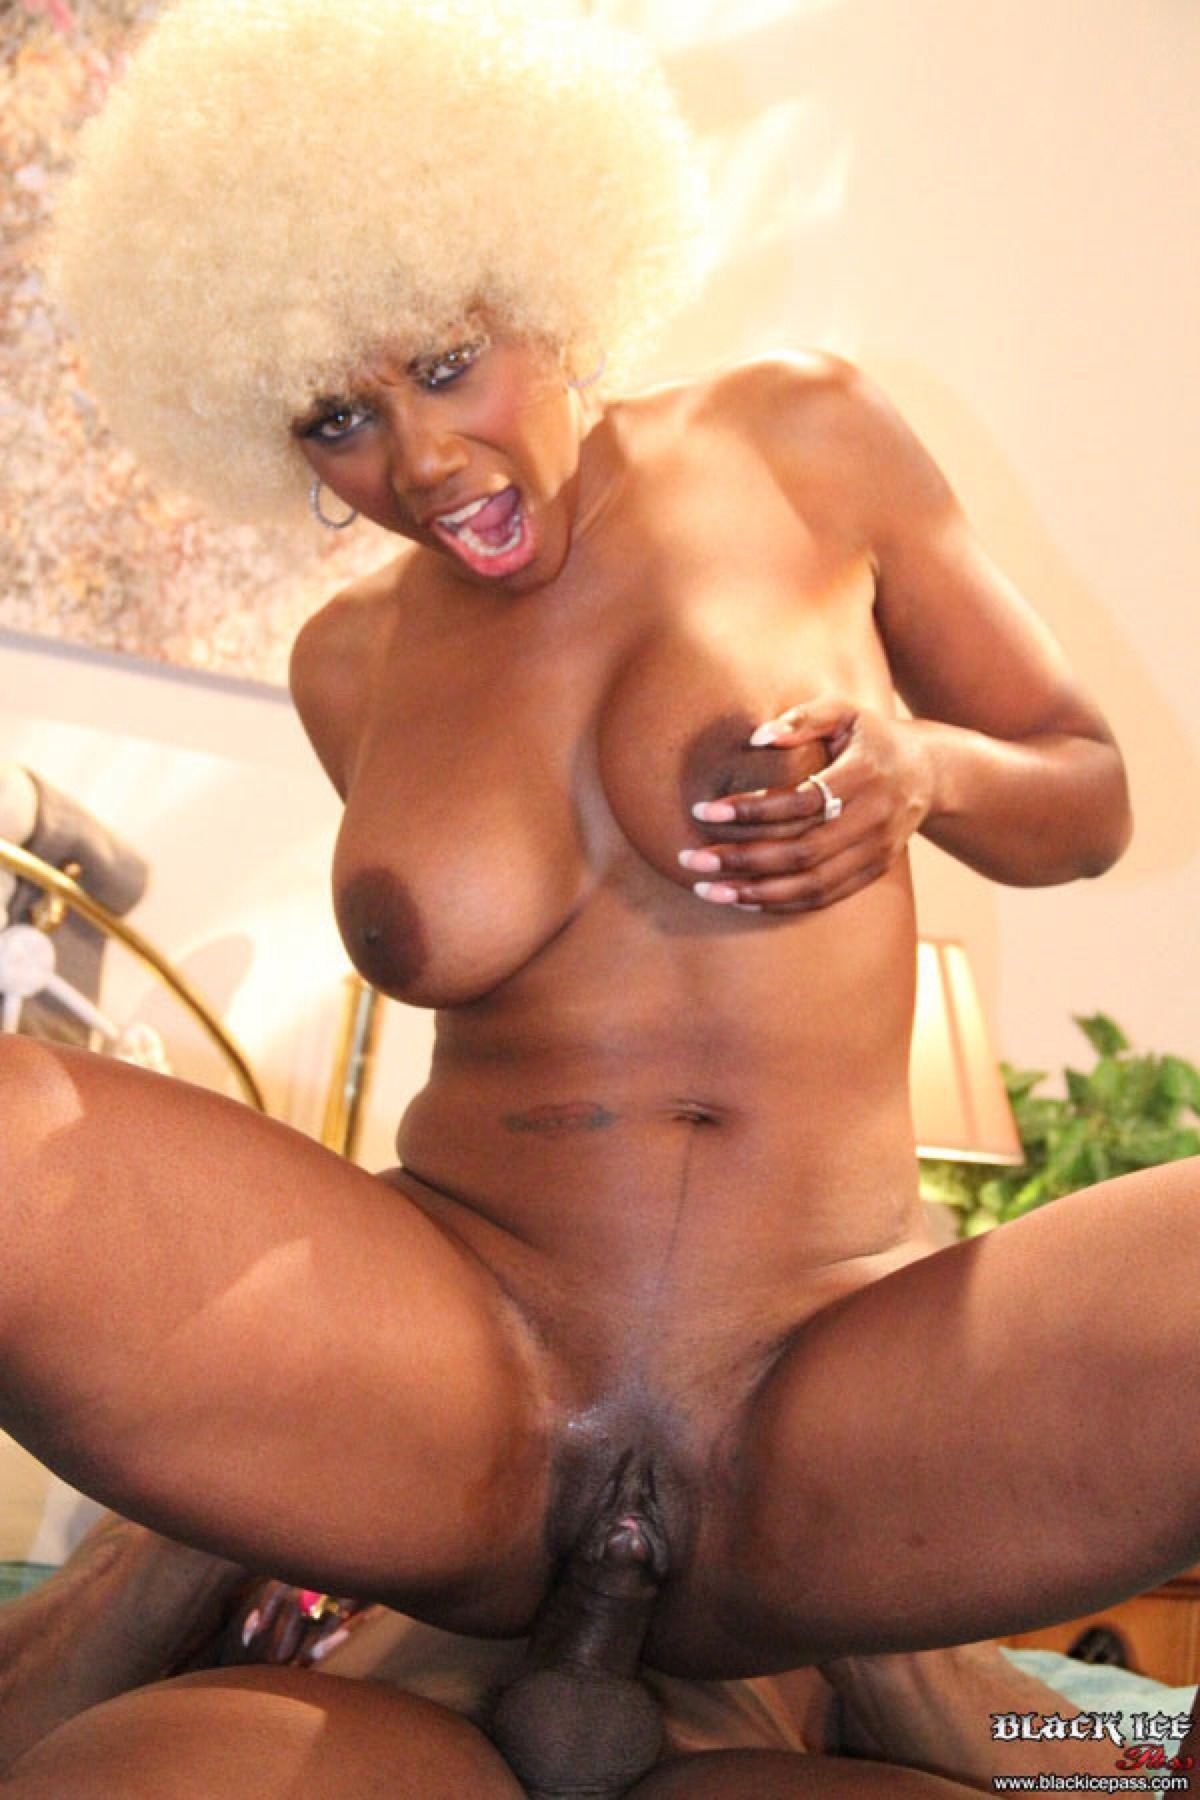 Black porn with big tits free mega boobs pic  black ebonyporn.com black women sexy naked